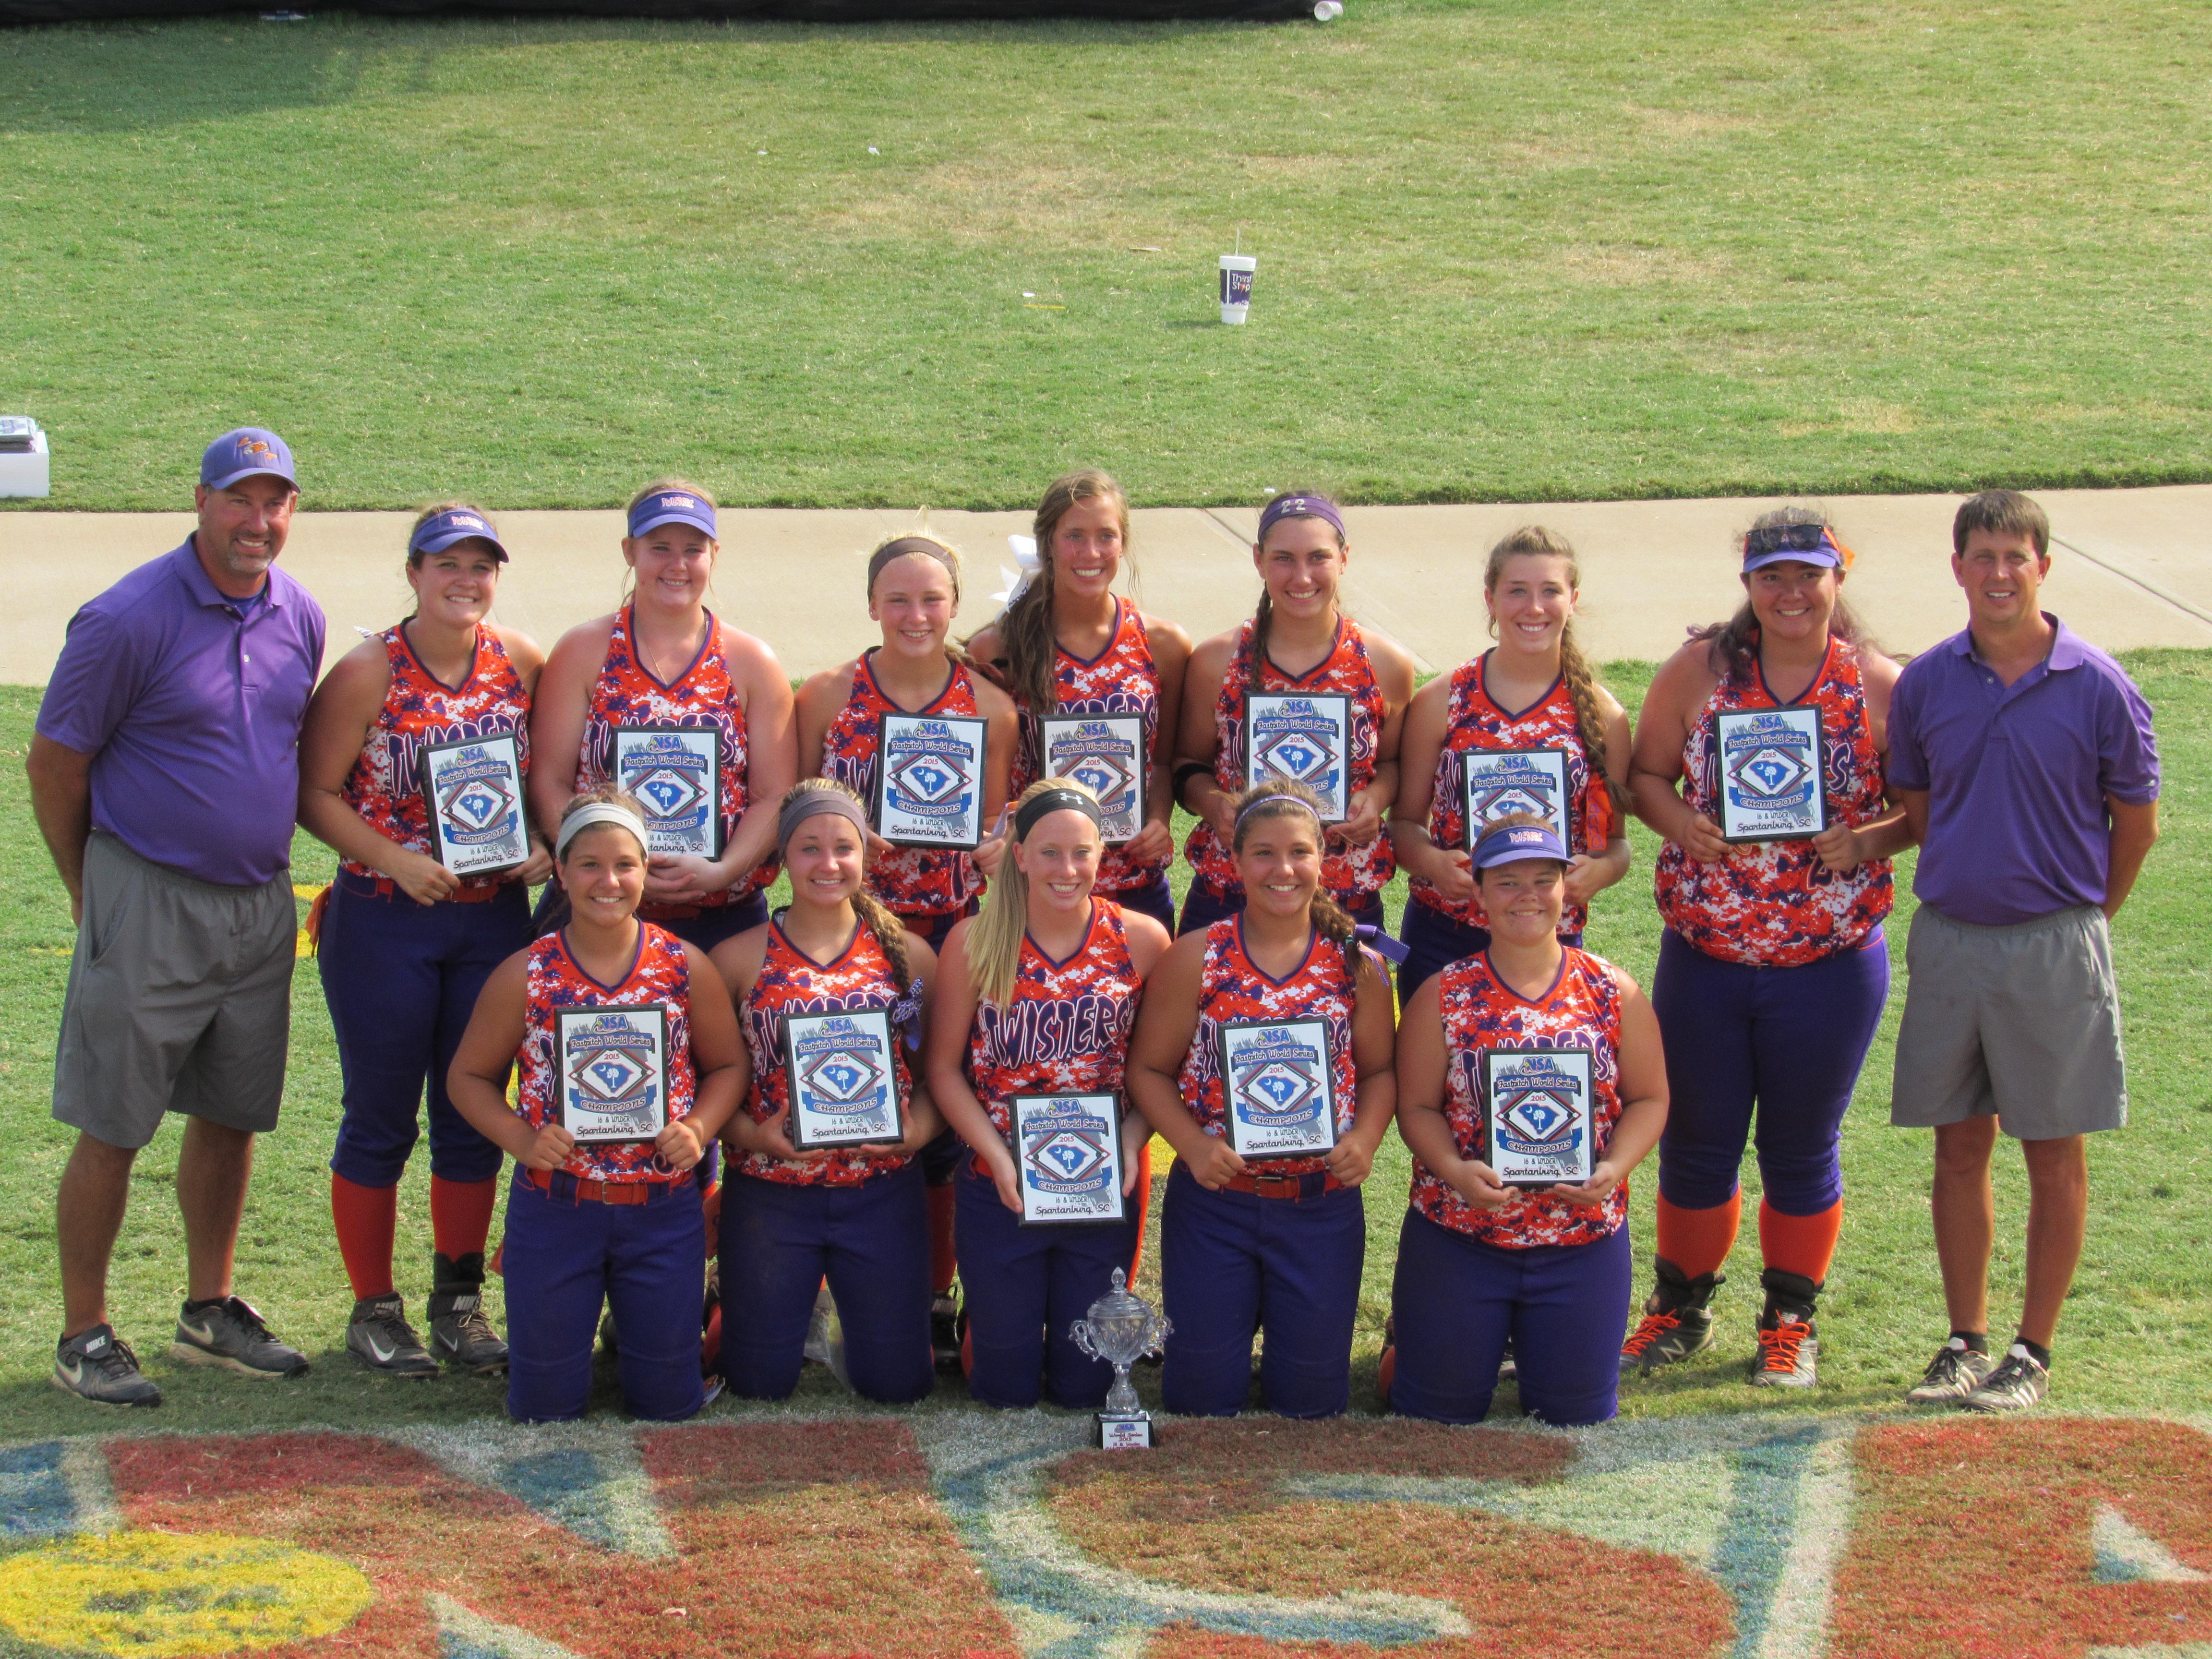 """The Lady Twisters travel softball team won five of seven tournaments this summer, including the NSA """"B"""" World Series in Spartanburg, South Carolina. Members of the team are, front row from left, Megan Ebbrecht, Alexis Eaton, Kaitlyn Hines, Morgan Ebbrecht and Lauren Willis; and second row from left, coach Jeff Ebbrecht, Jaycee Crouch, Keiri Johnson, Michaela Criner, Kassidy Hines, Abbi Ebbrecht, Hannah Wilson, Lainie Nakanishi and coach Kirk Hines."""